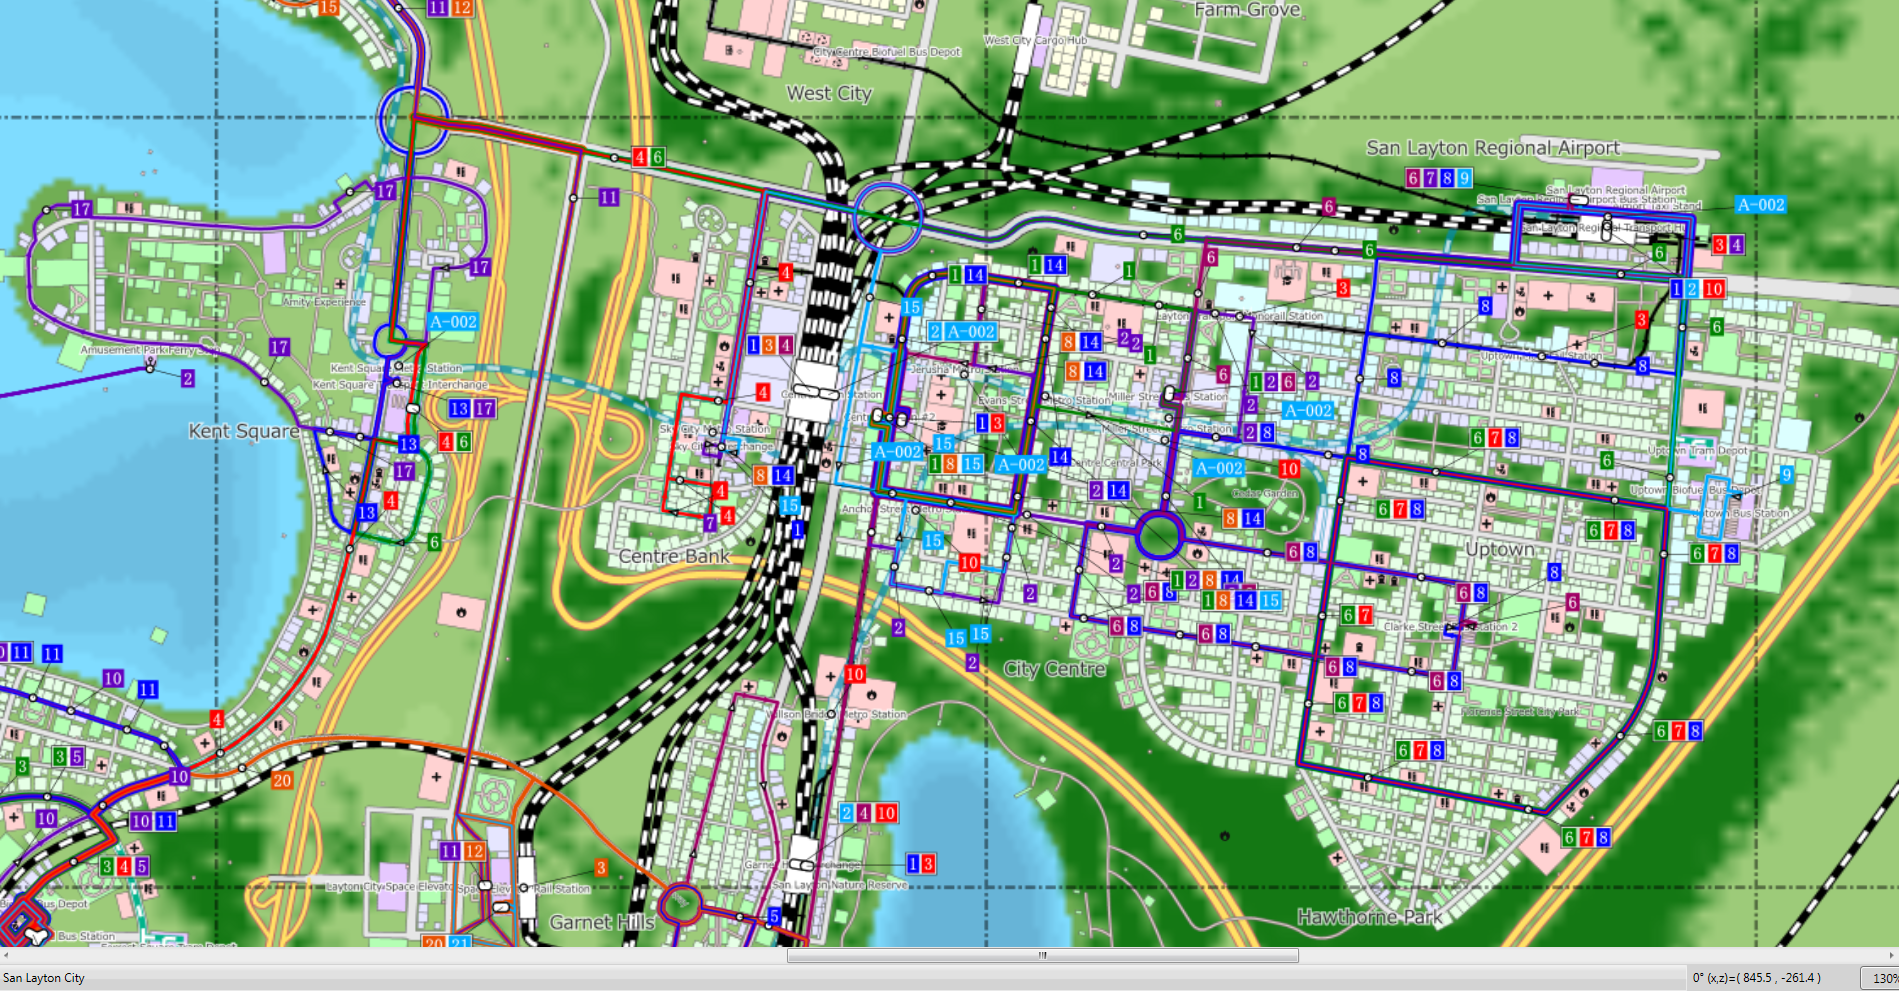 #CitiesSkylines in Maps and 3D Printing? Urban Geography Communication Devices